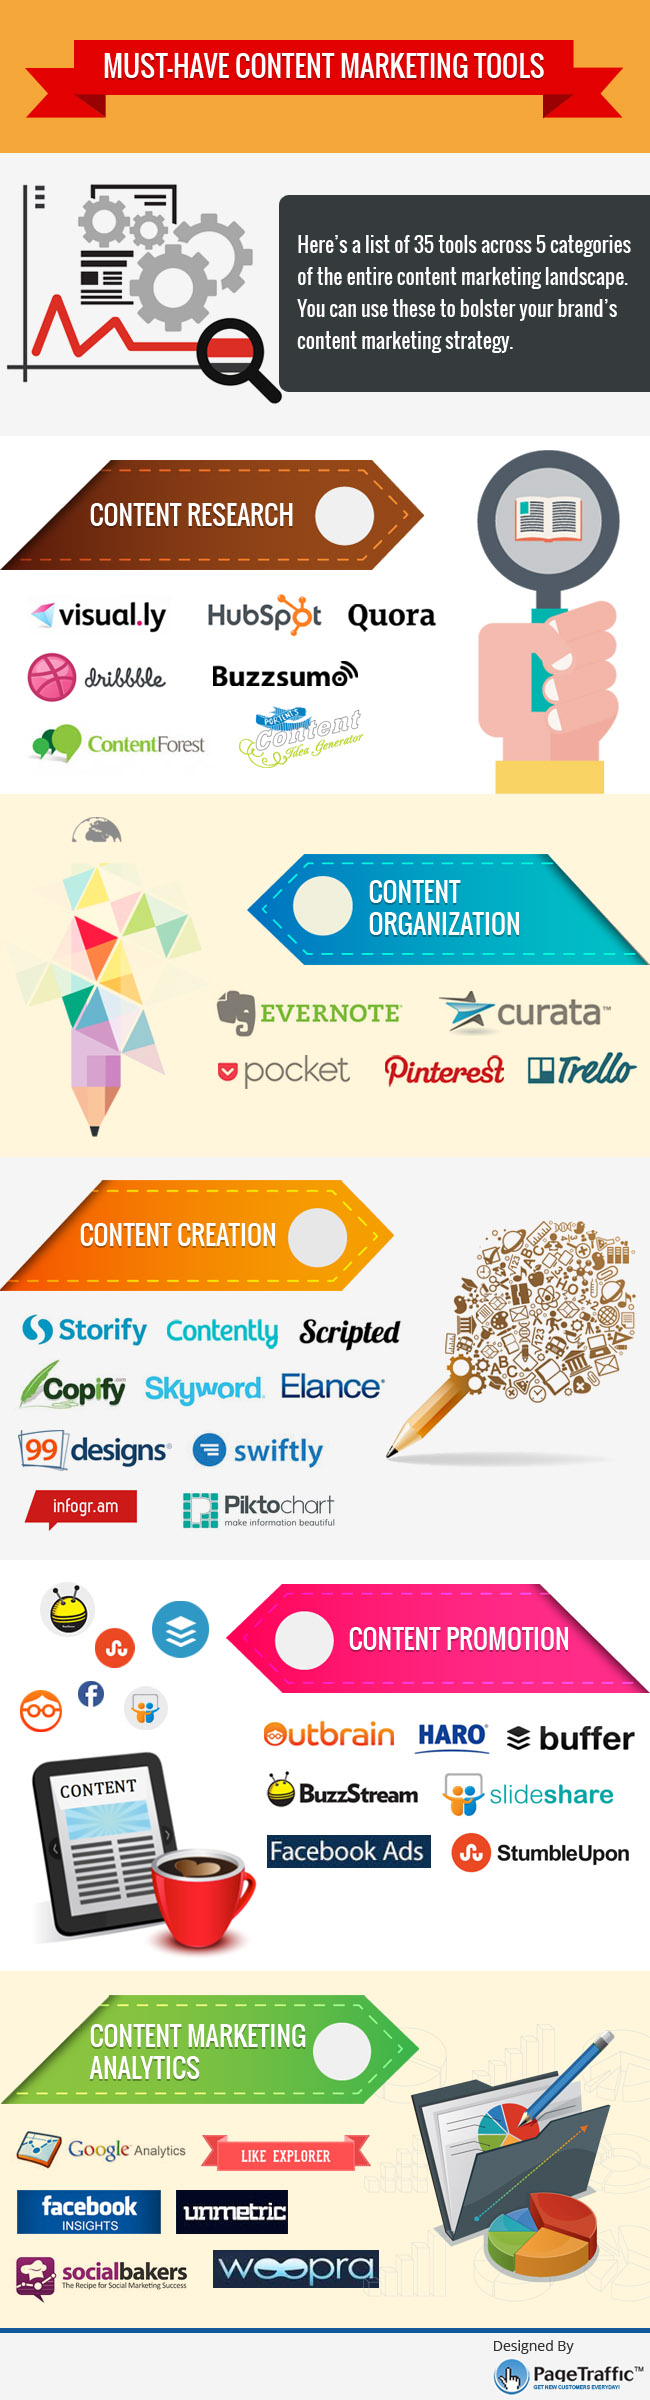 Infographic: Content Marketing Tools